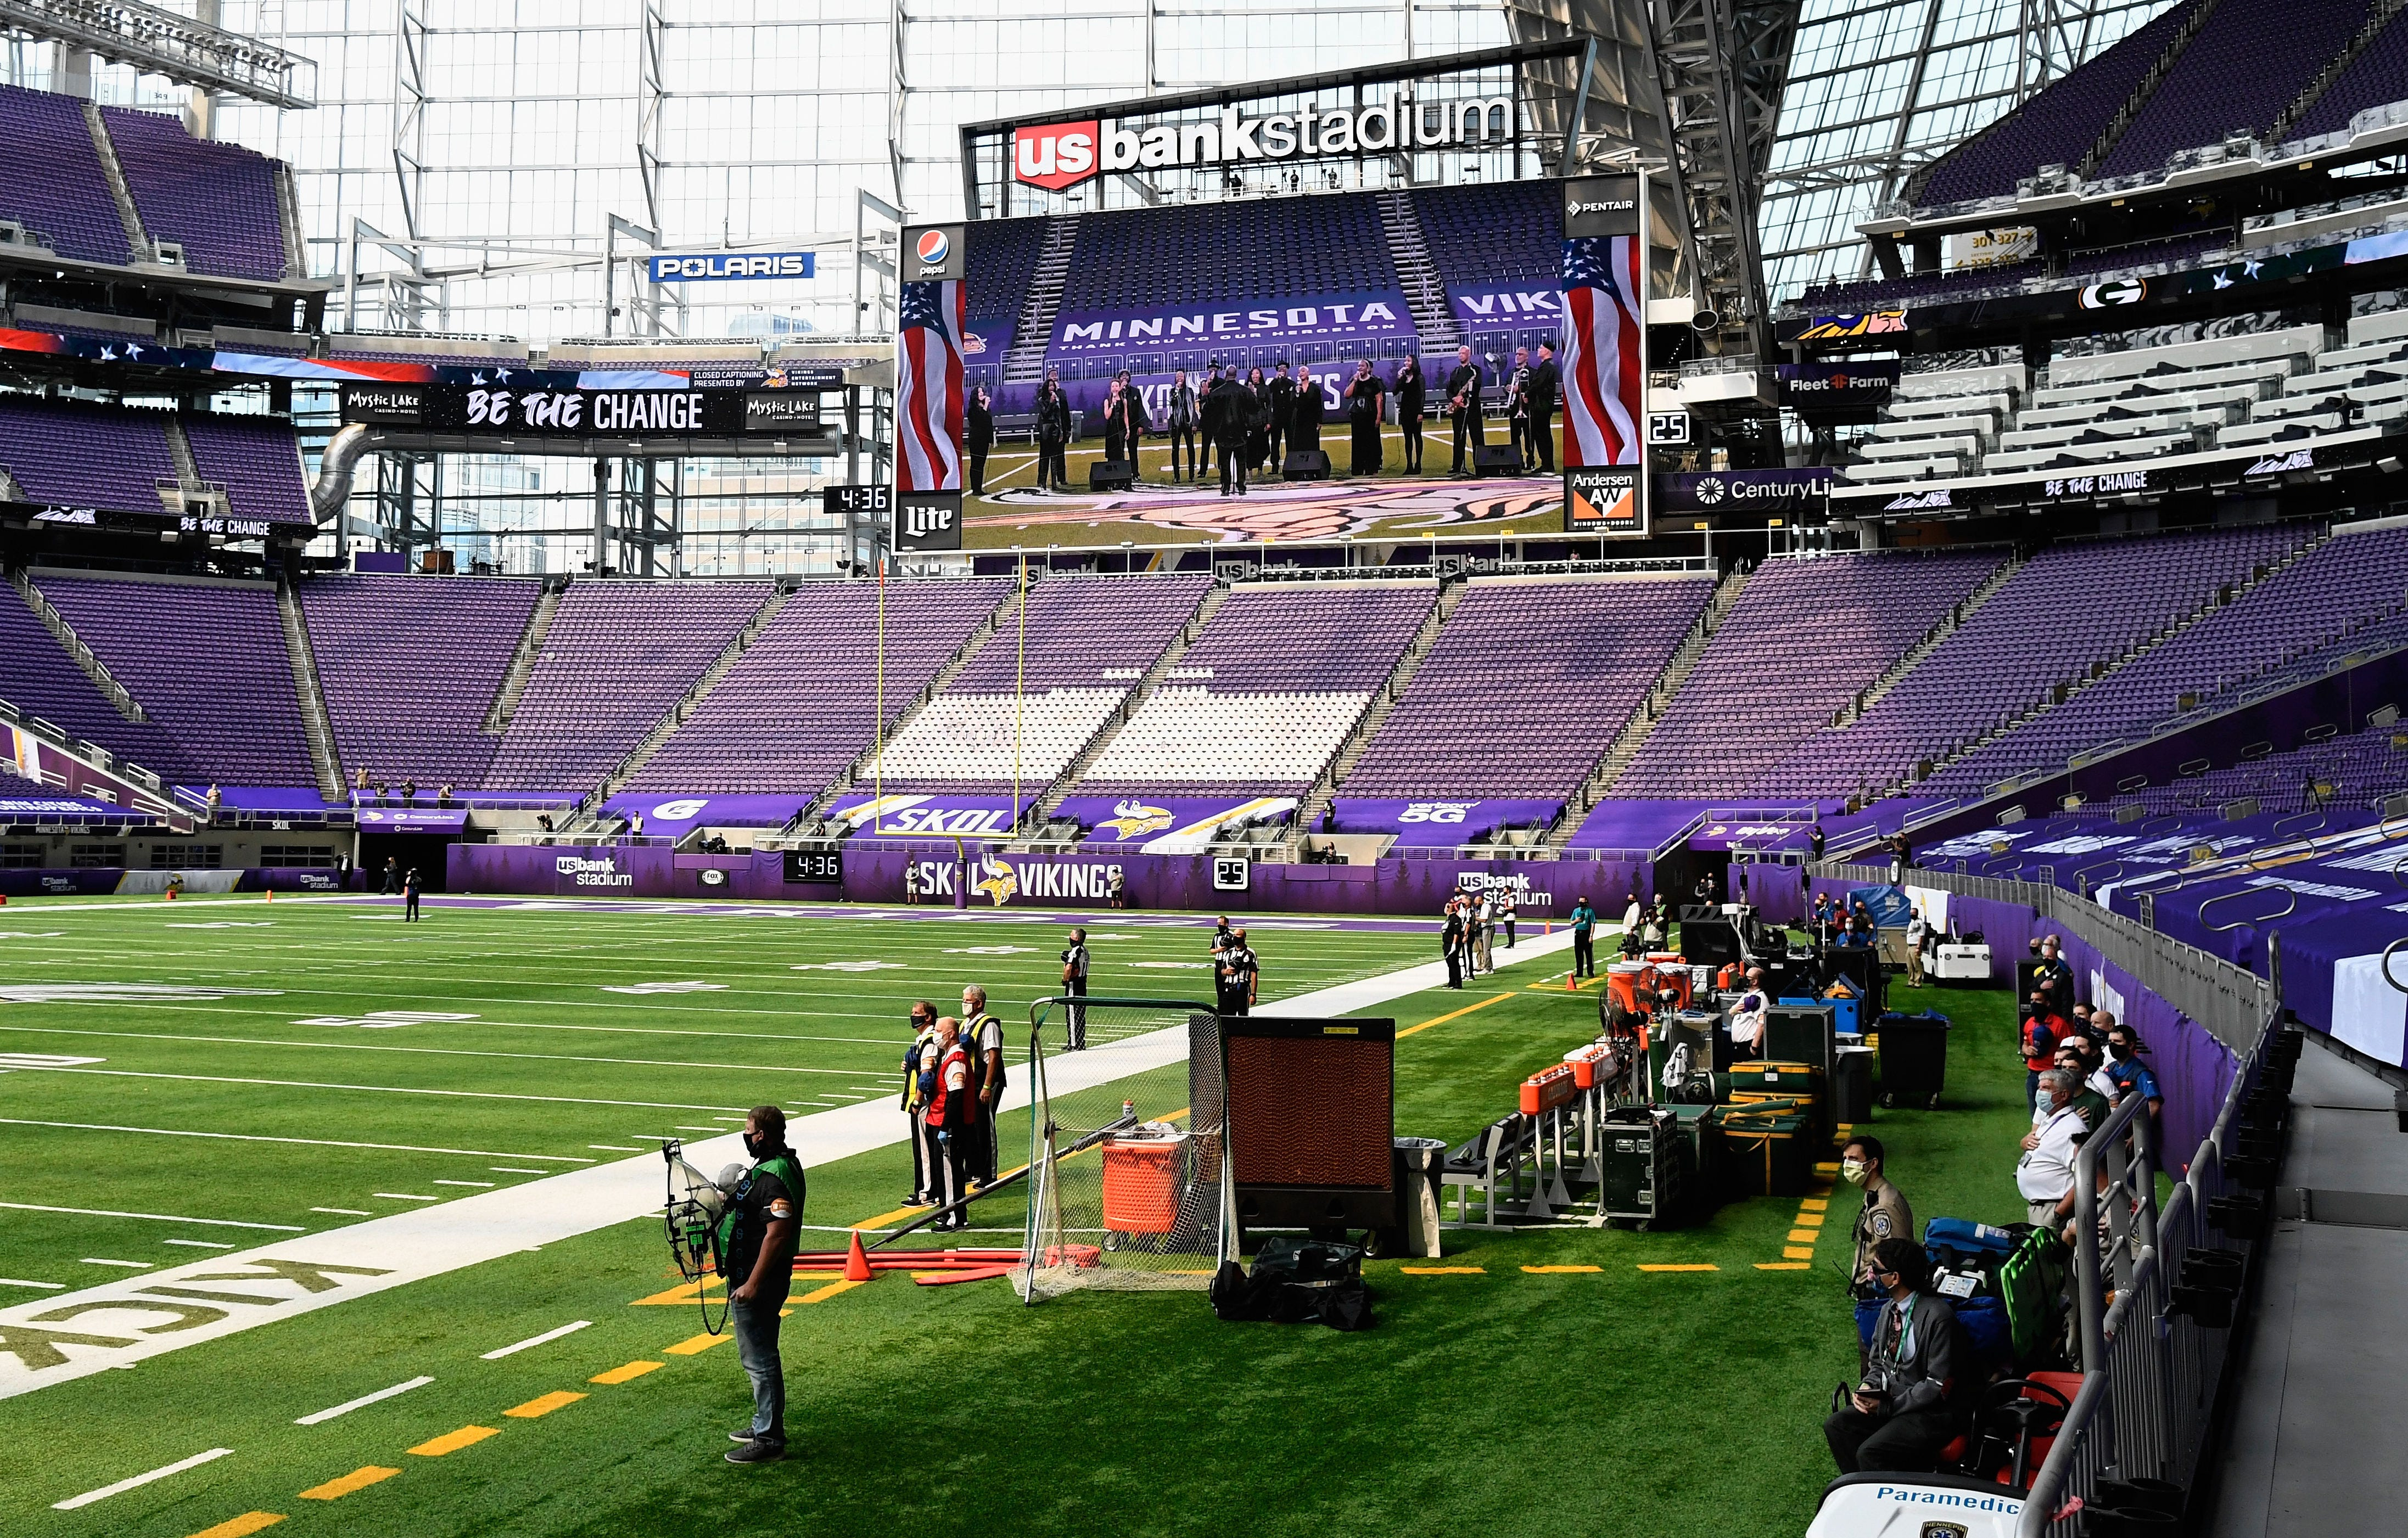 The Green Bay Packers bench is empty as the team remained in the locker room for the National Anthem as a gesture to bring attention to the fight for social justice before the game against the Minnesota Vikings at U.S. Bank Stadium on September 13, 2020, in Minneapolis.